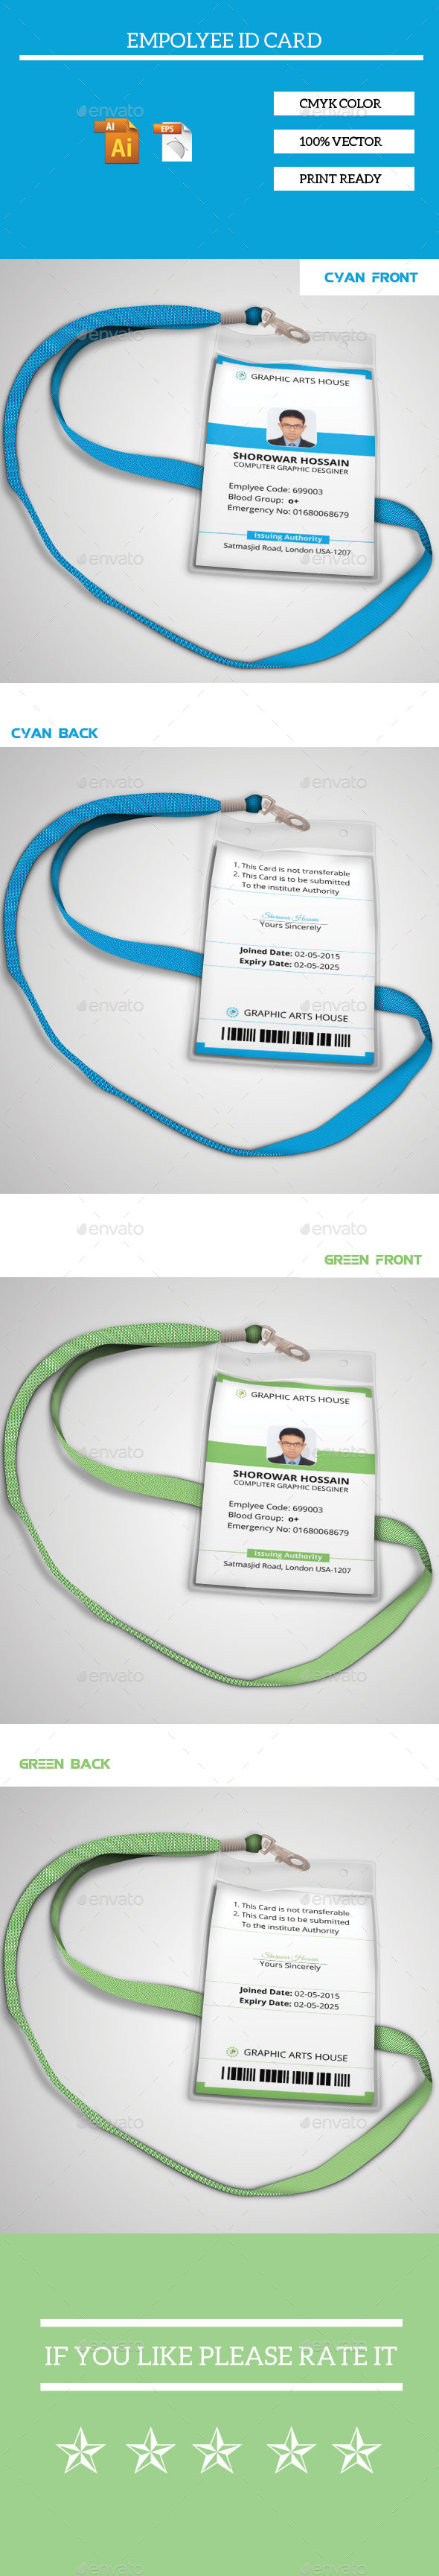 GraphicRiver Employee Id Card 11616718